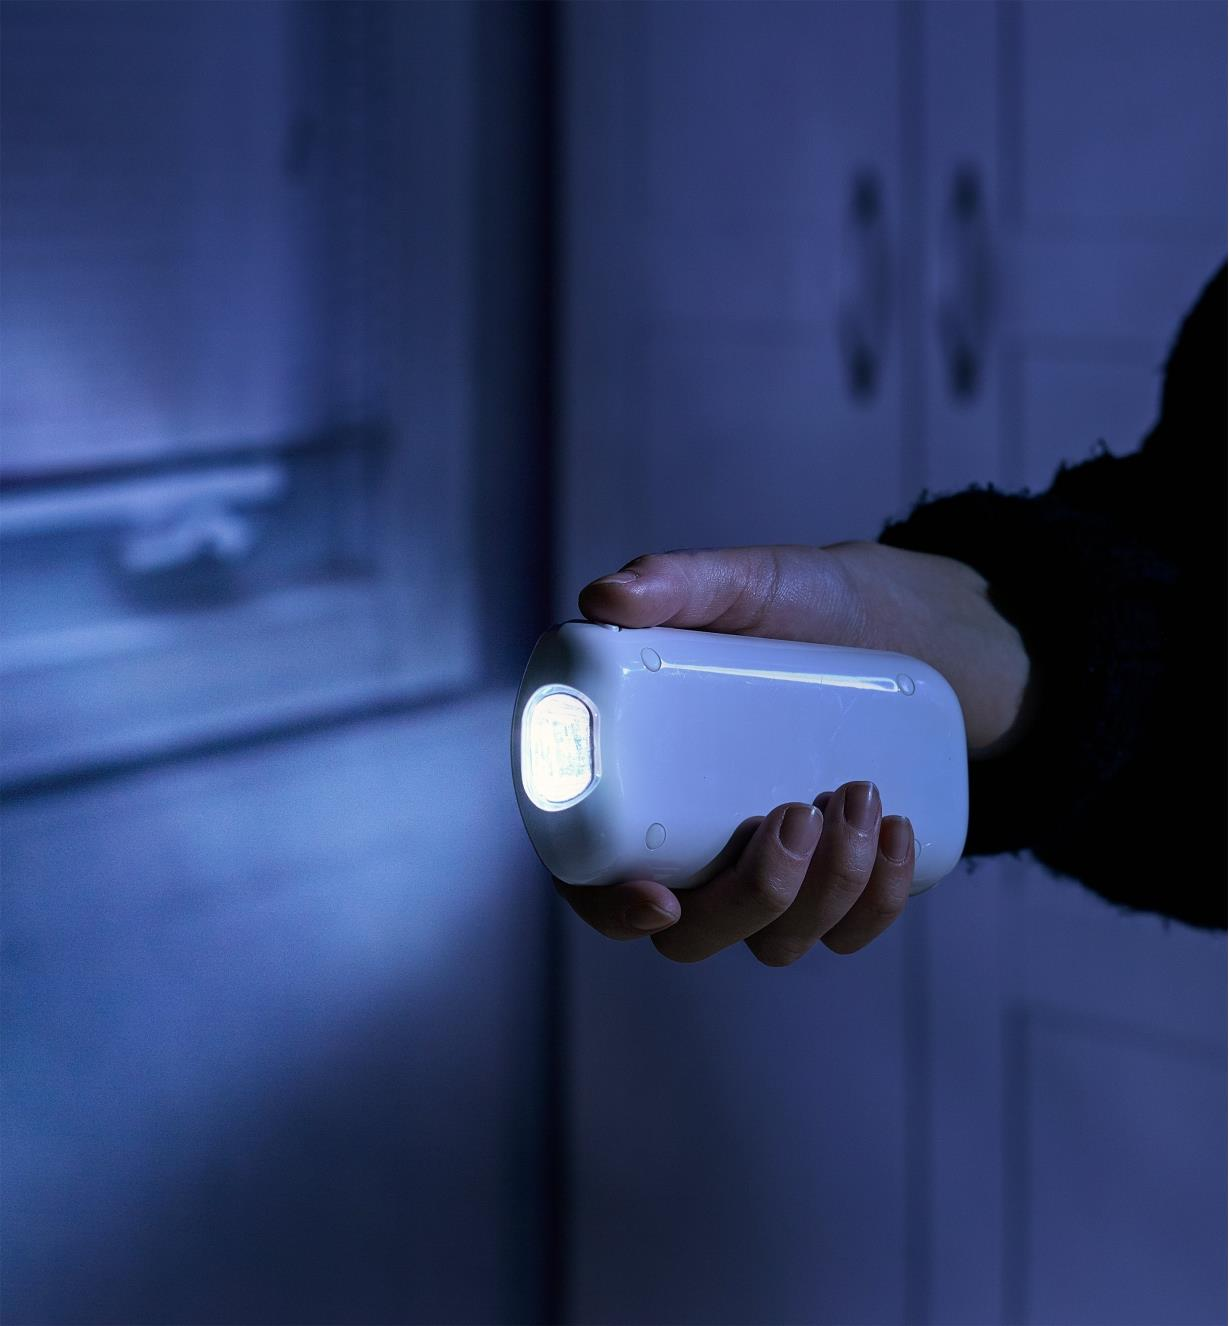 Rechargeable LED nightlight/flashlight removed from its dock and used as a hand-held flashlight